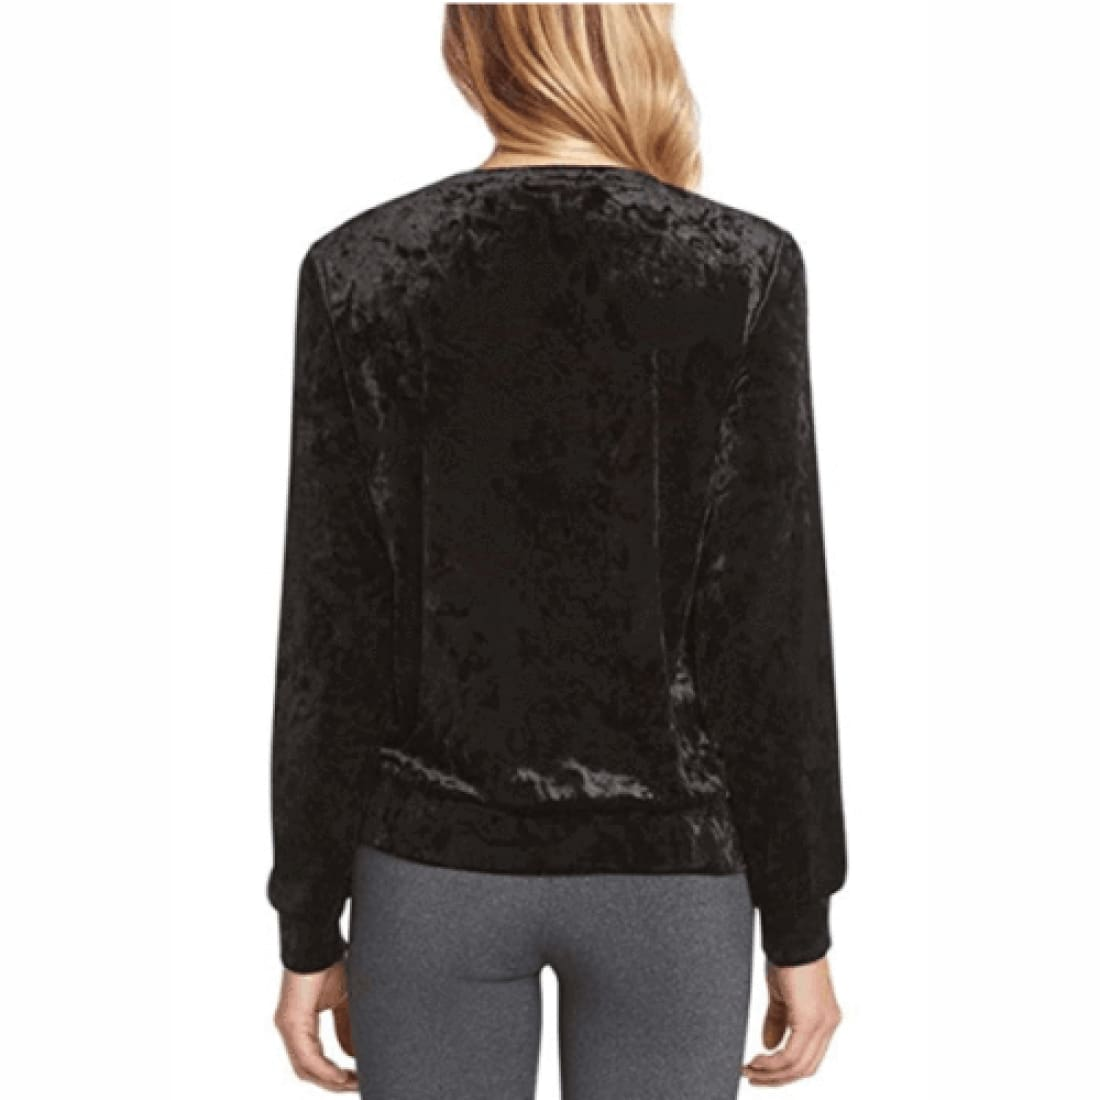 Matty M Womens Long Sleeve Velvet Top Tops & Blouses